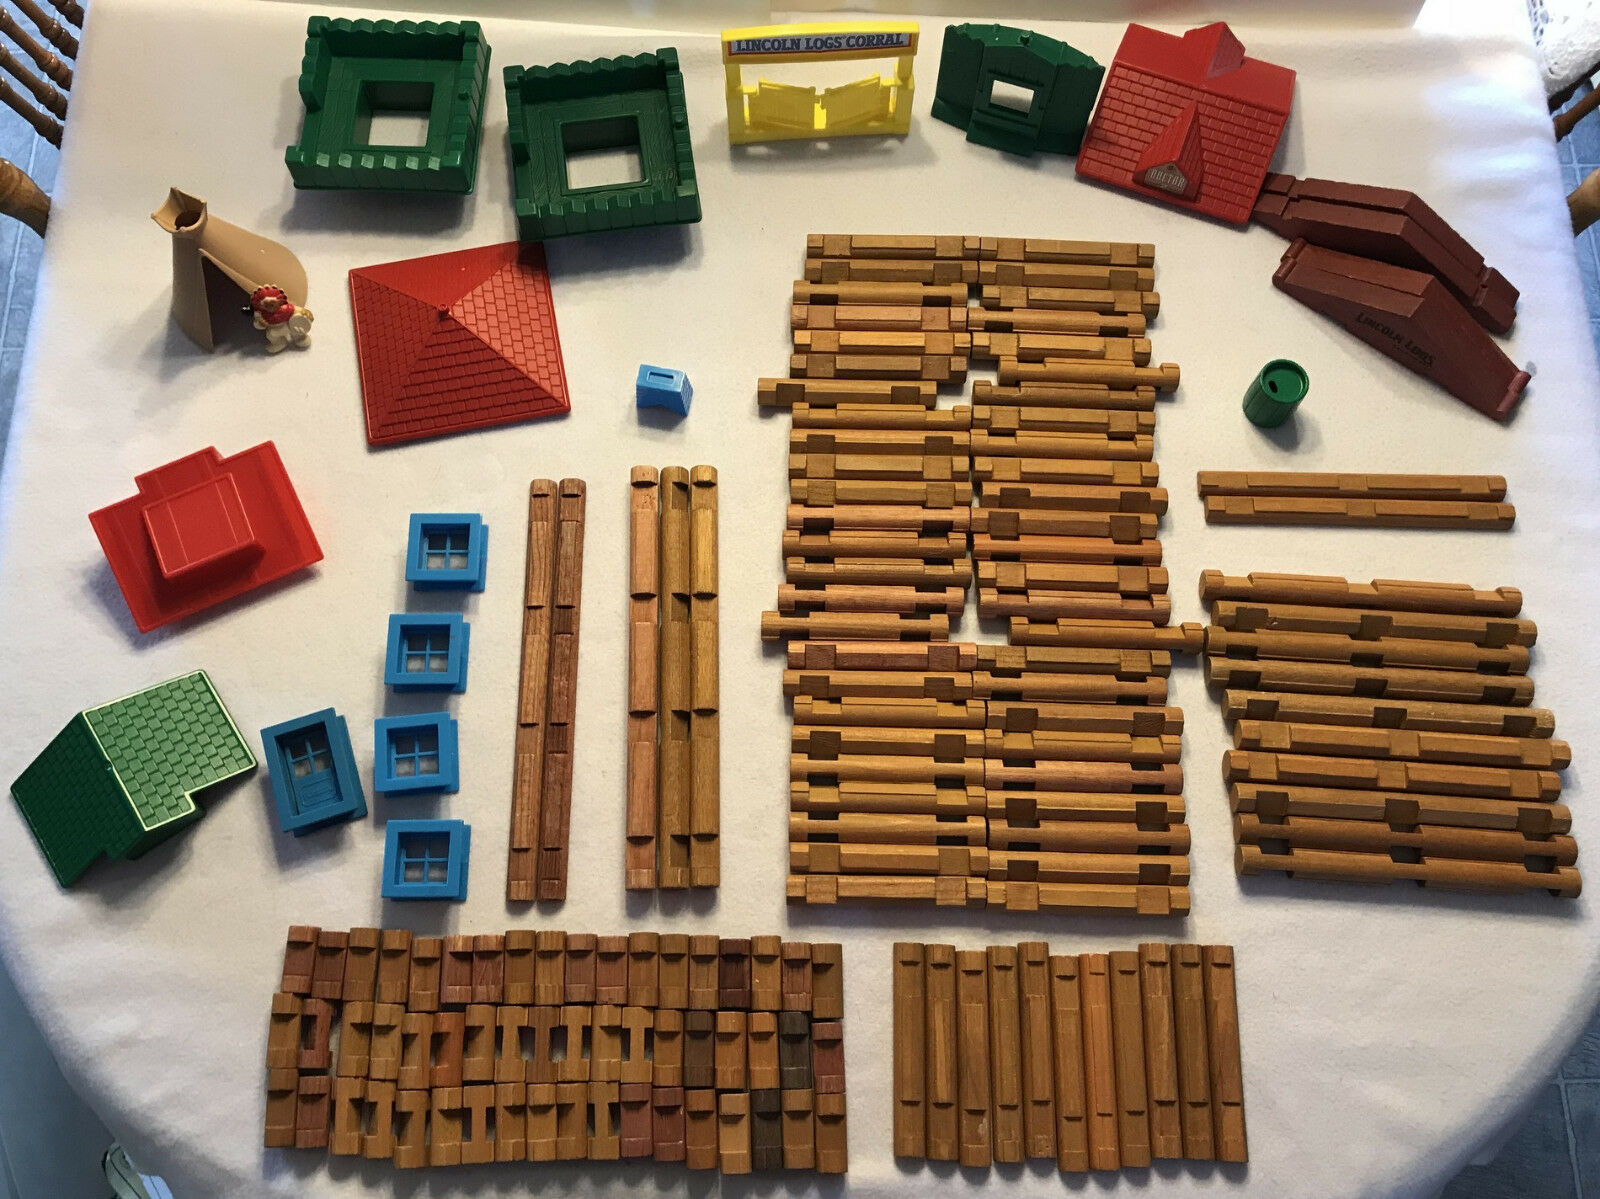 157 piece Wooden Lincoln Lincoln Lincoln Log building set roof window truss Teepee Lot 40 d10818